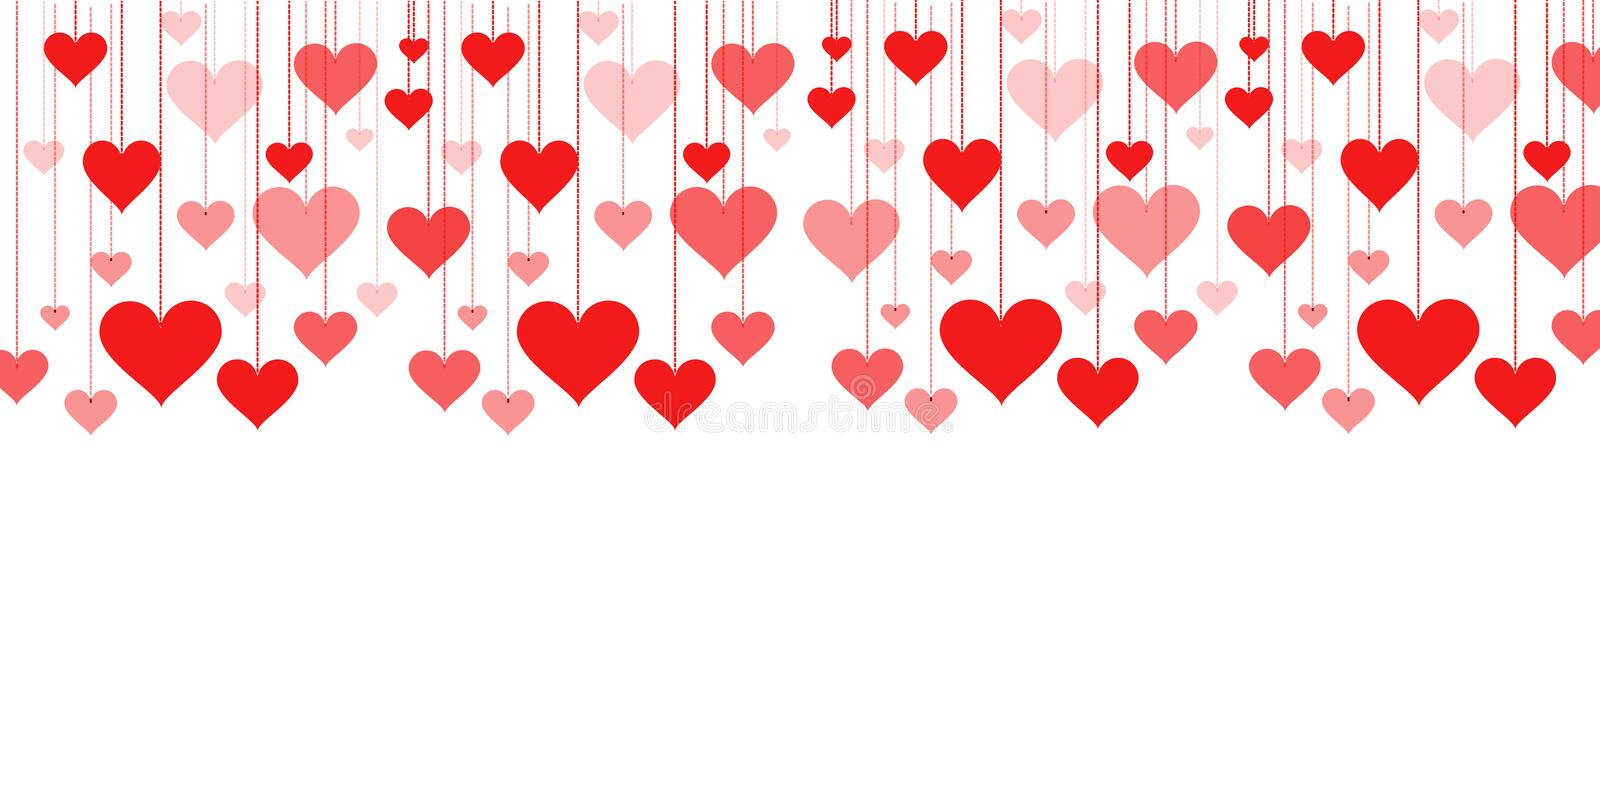 Banner of a garland of hearts background Valentine's Day, wedding vector illustration